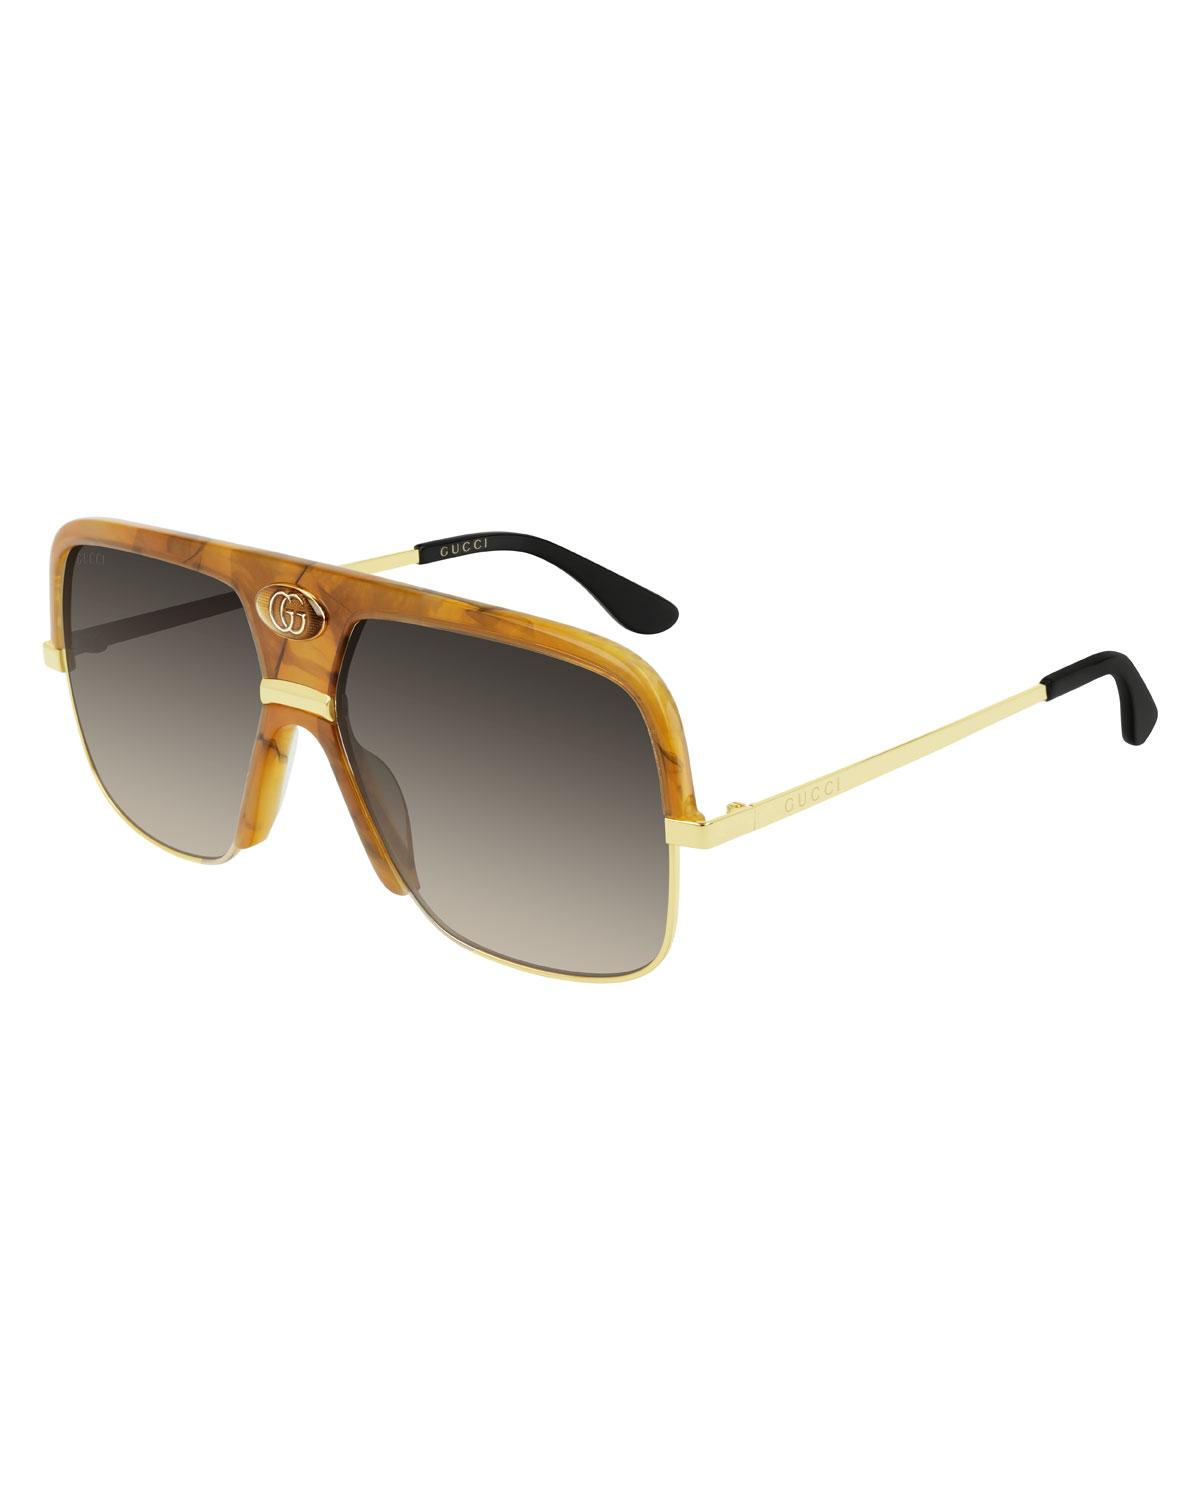 855480afb Gucci. Brown Men's Aviator Sunglasses With Exaggerated Logo Brow. $505 From Bergdorf  Goodman